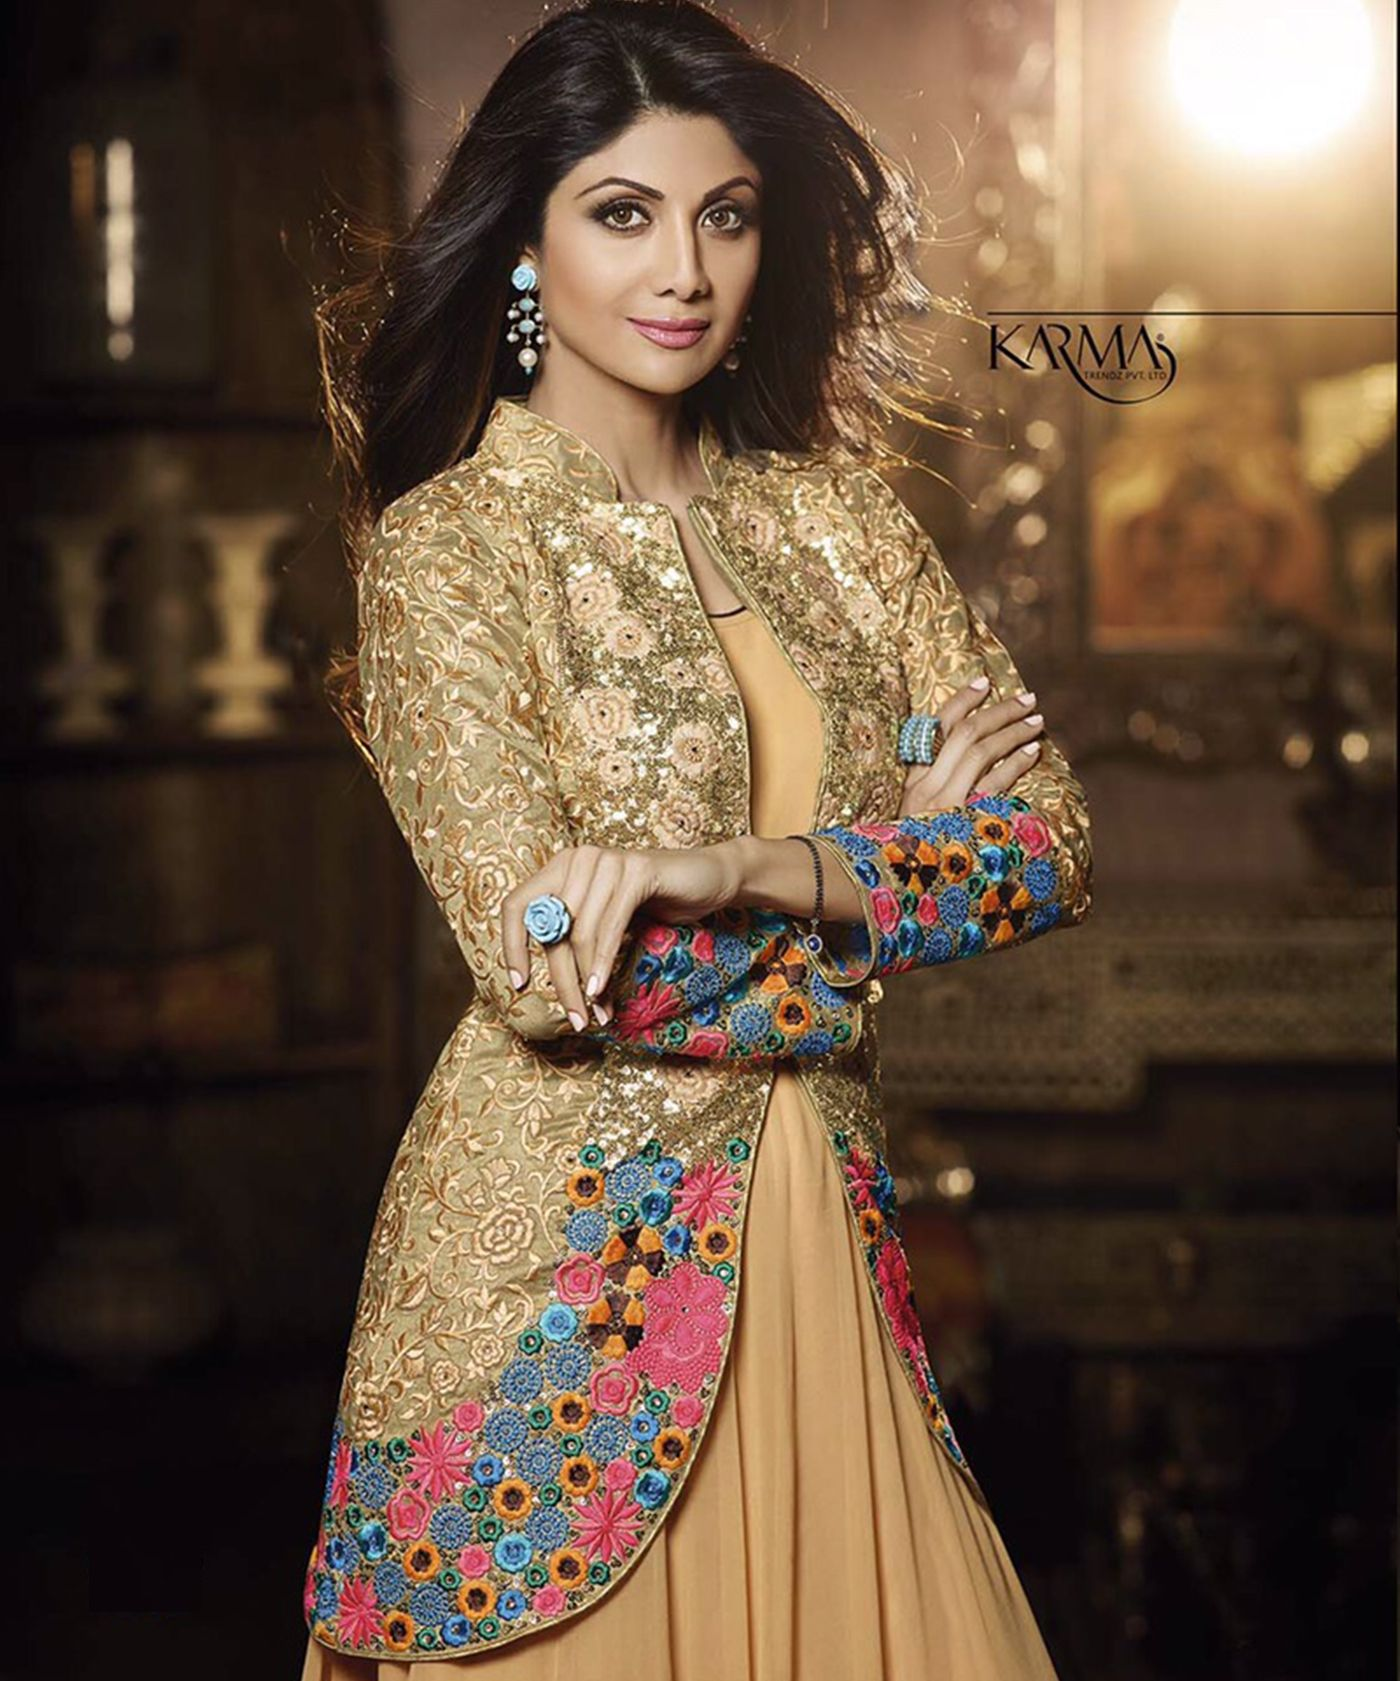 005961251 Online Shopping India Store Sell Beige Indian Bollywood Actress Designer  Dress.